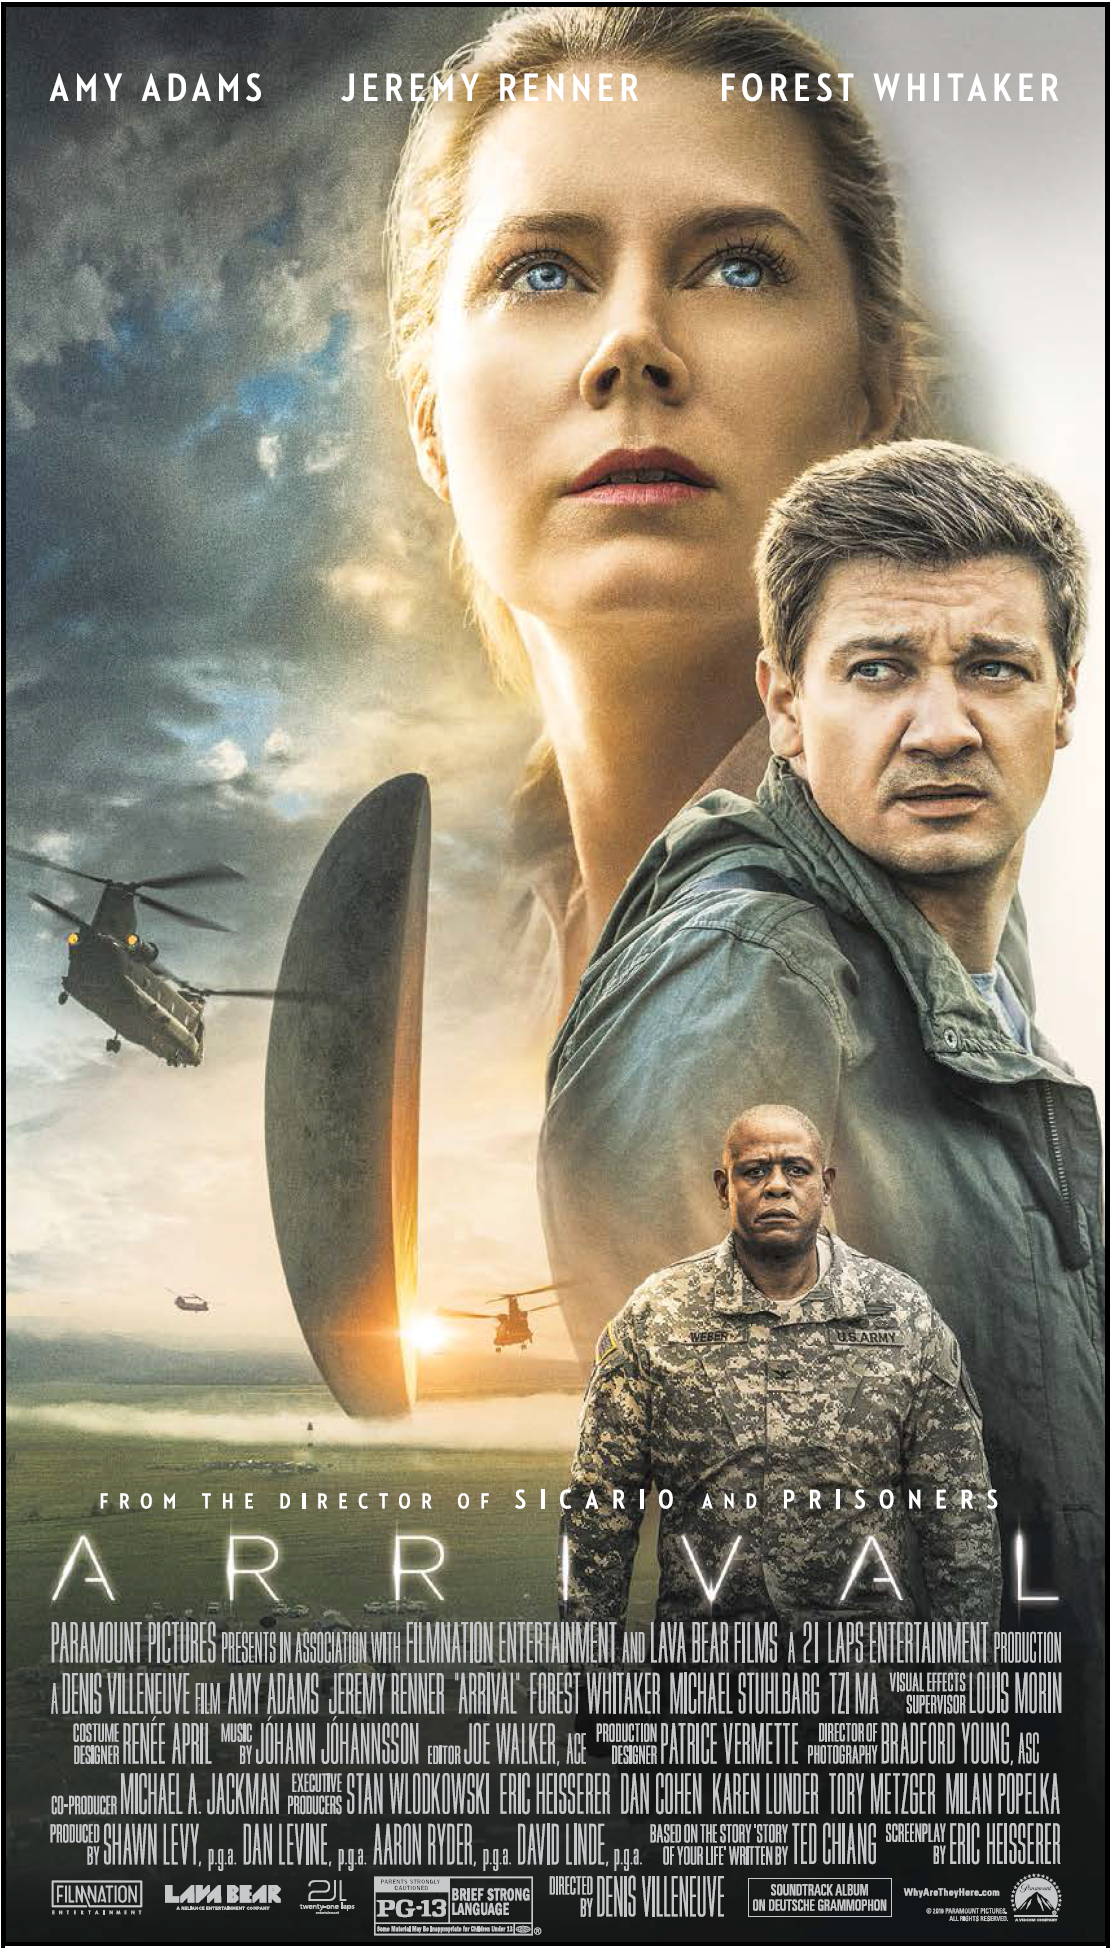 WIN A CHANCE TO SEE: ARRIVAL (Screening 11/7)